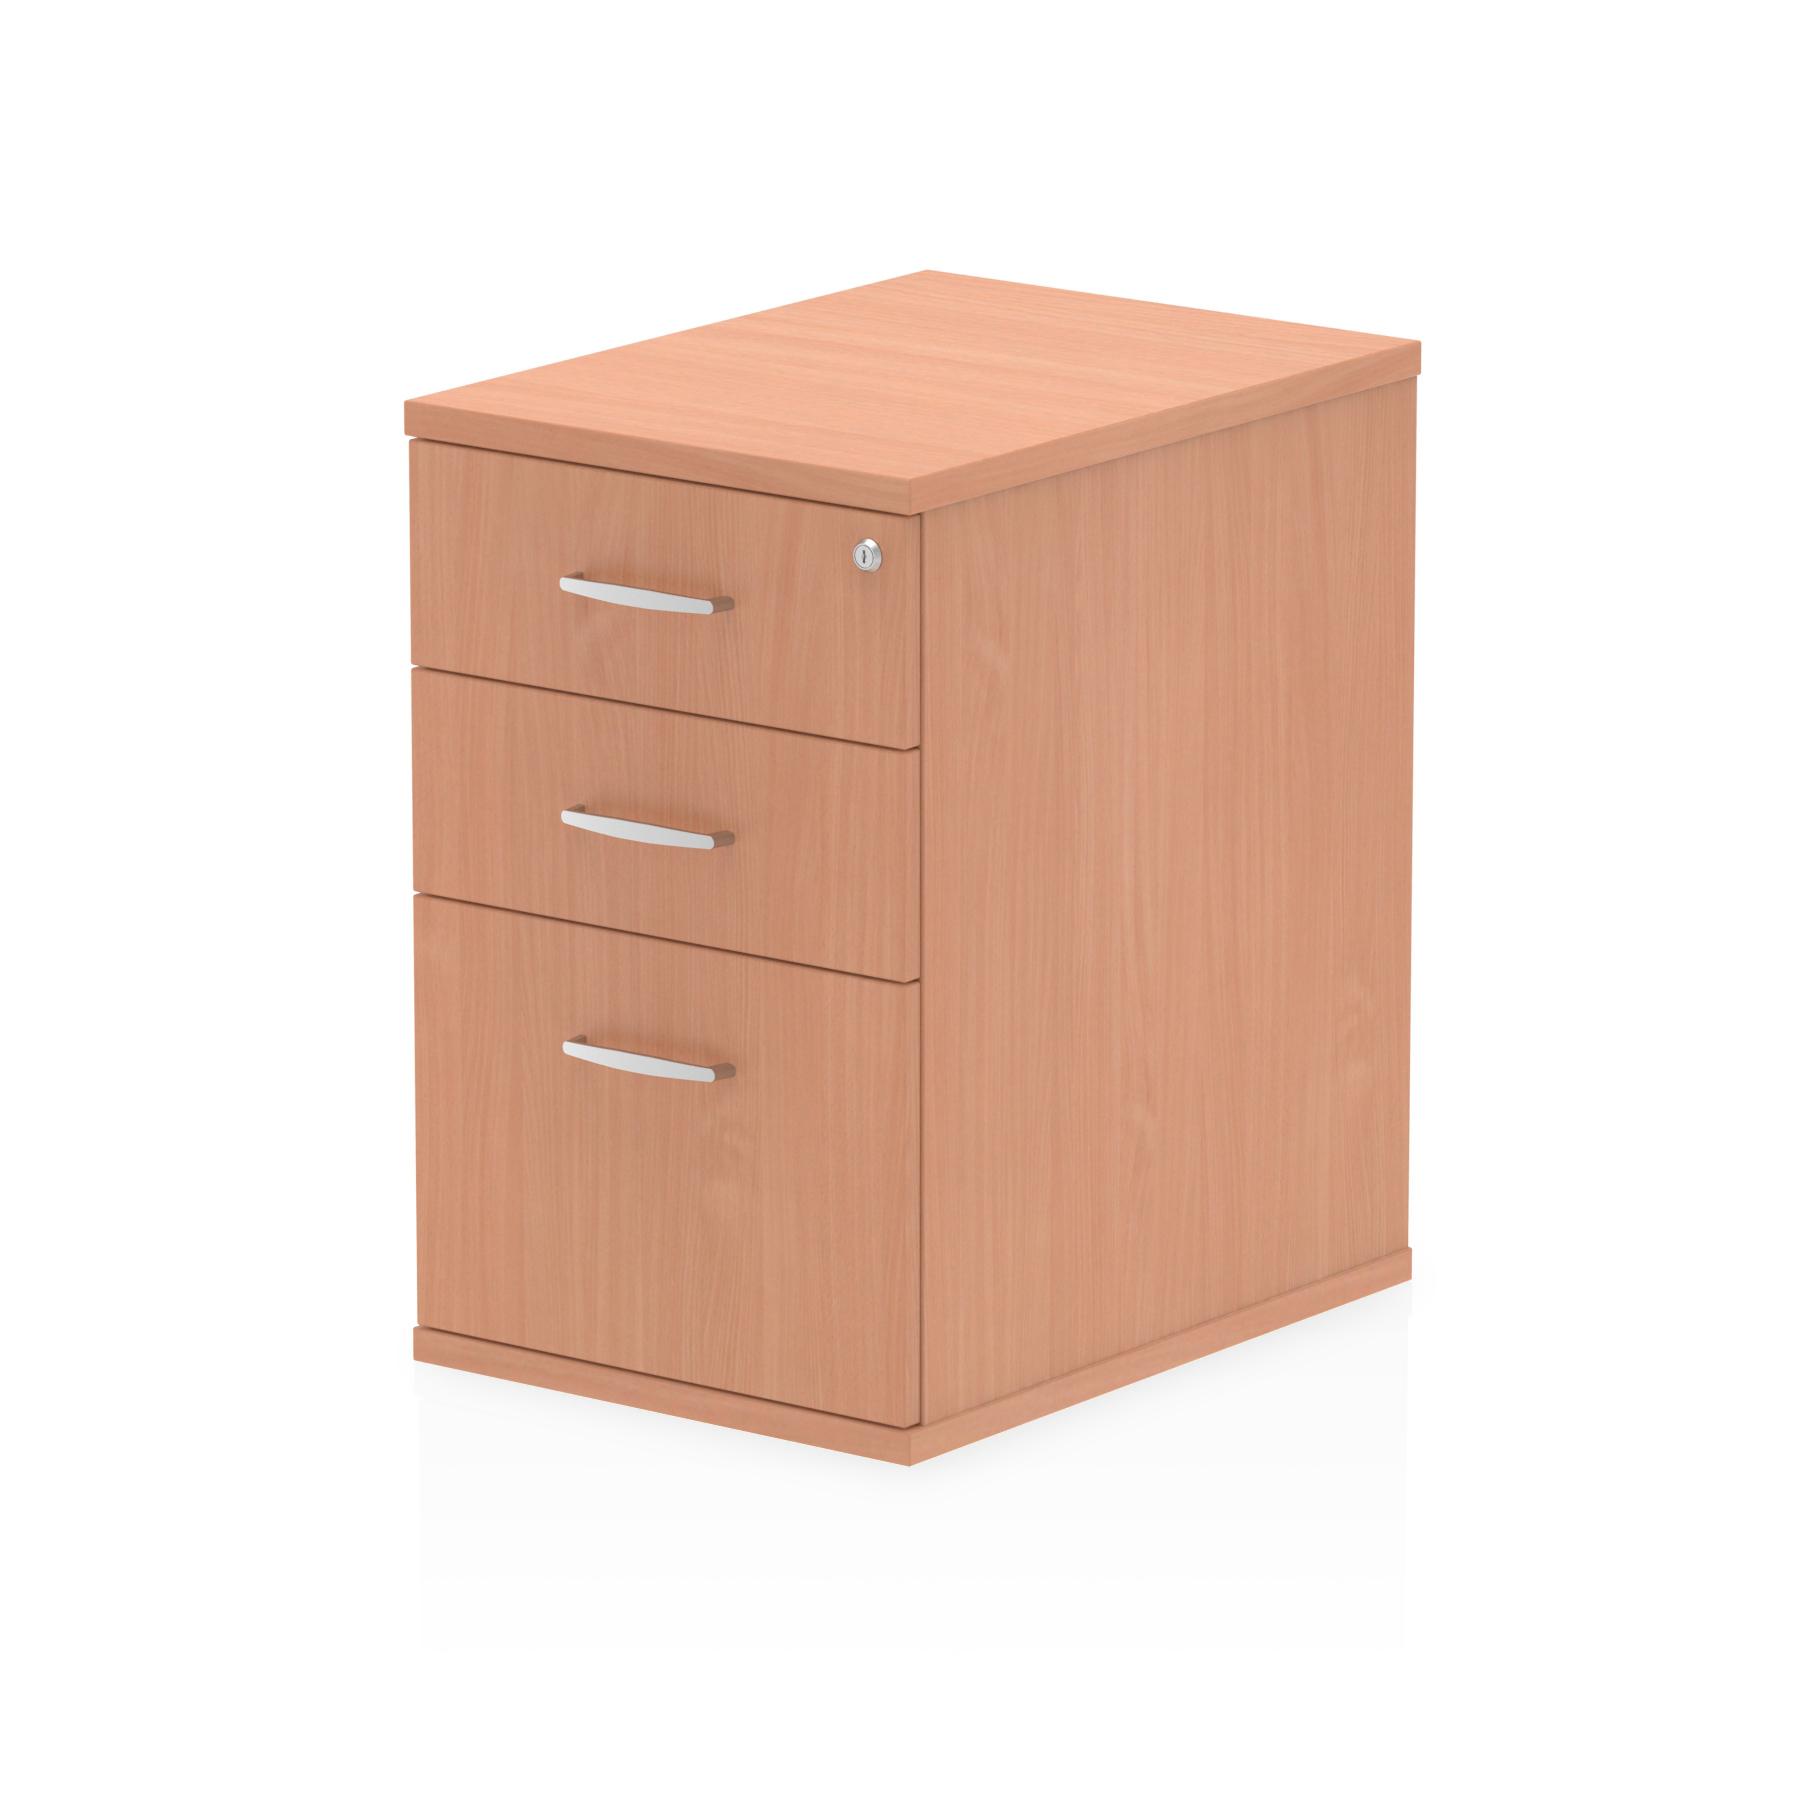 Trexus Desk High 3 Drawer 600D Pedestal 425x600x730mm Beech Ref I000069